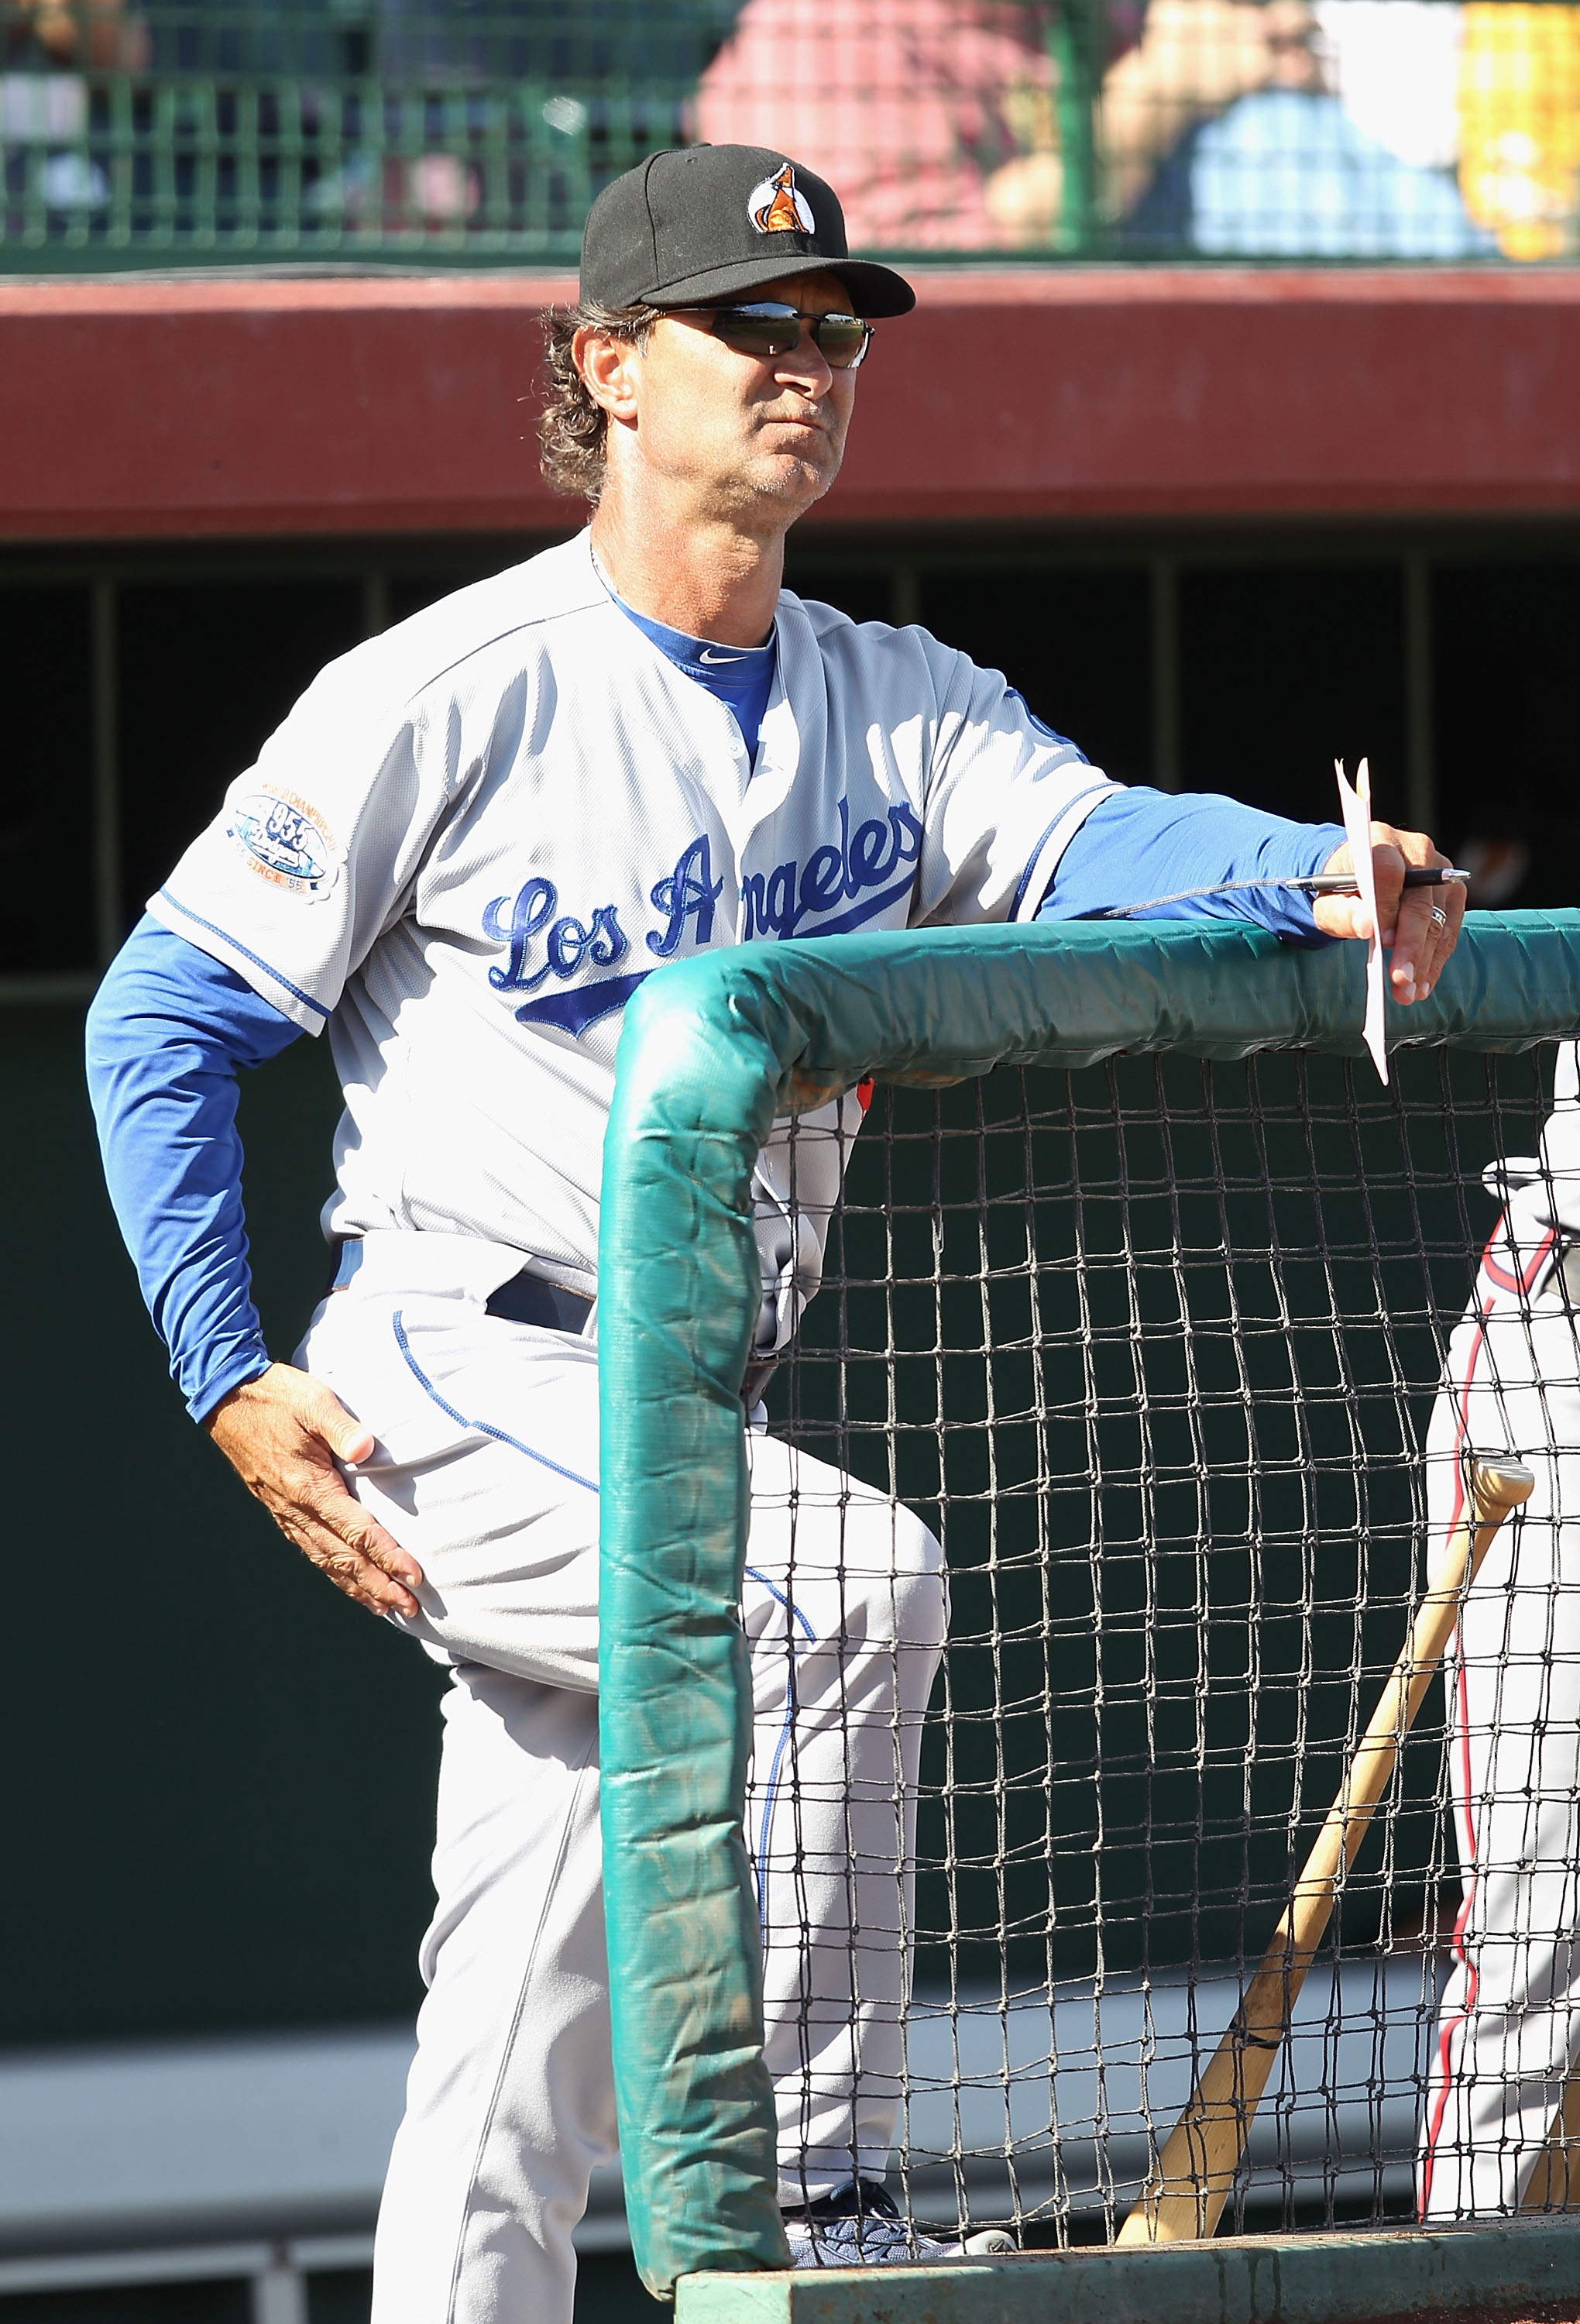 SCOTTSDALE, AZ - OCTOBER 23:  Los Angeles Dodgers manager Don Mattingly coaches for the Phoenix Desert Dogs during the AZ Fall League game against the Scottsdale Scorpions at Scottsdale Stadium on October 23, 2010 in Scottsdale, Arizona.  (Photo by Christ